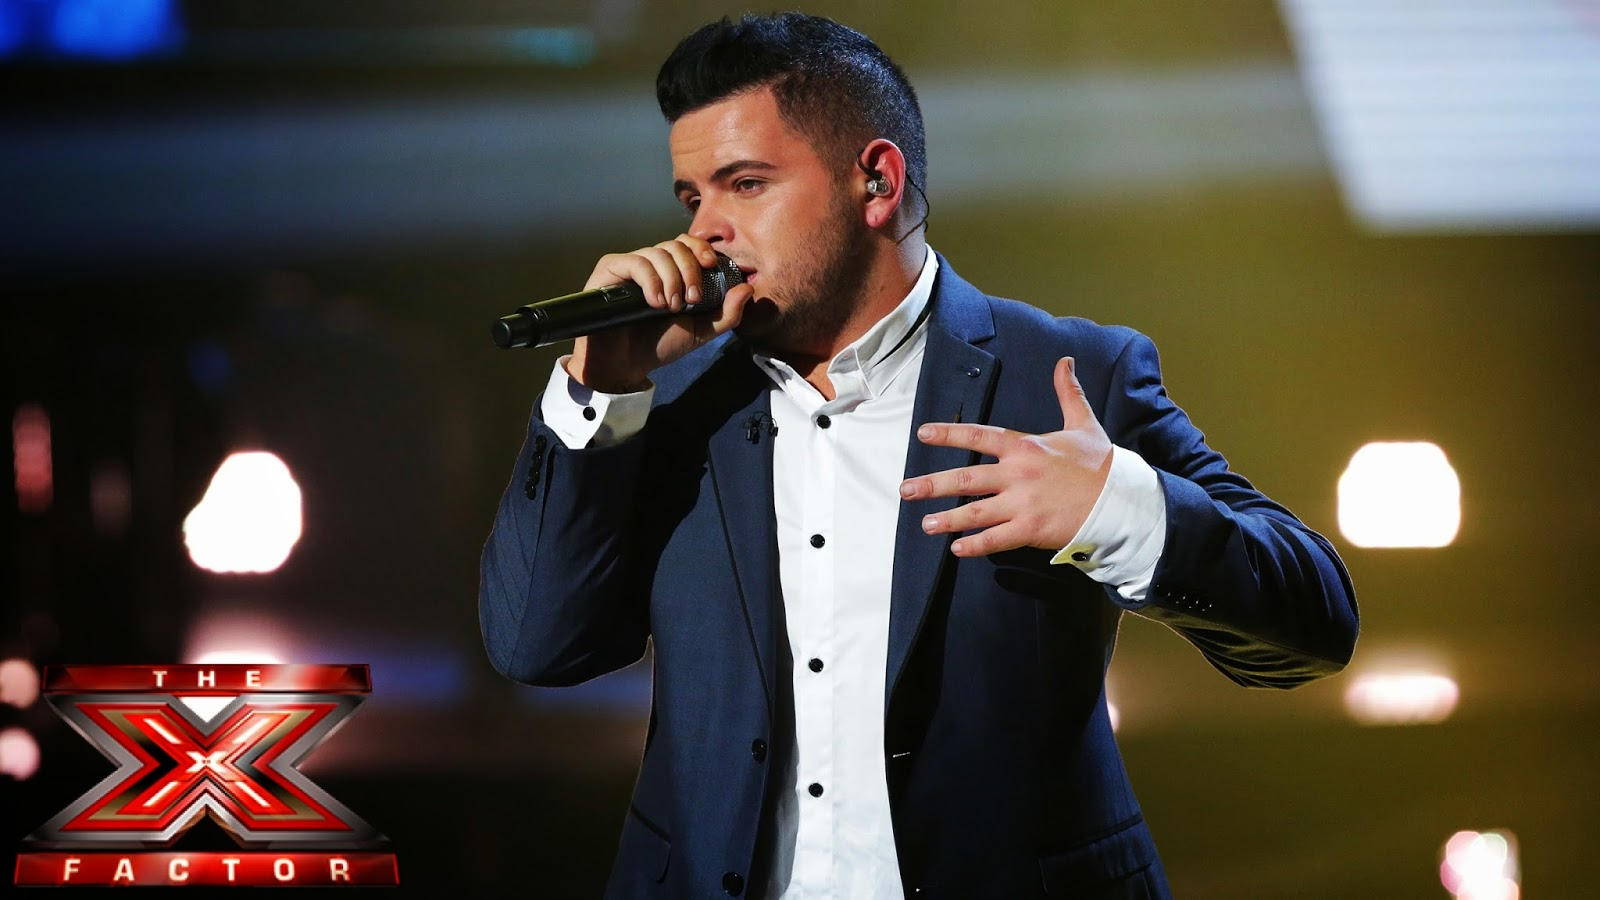 The Dam Nation The Voice 6 Wrap Up 25 Best Performances – Desenhos